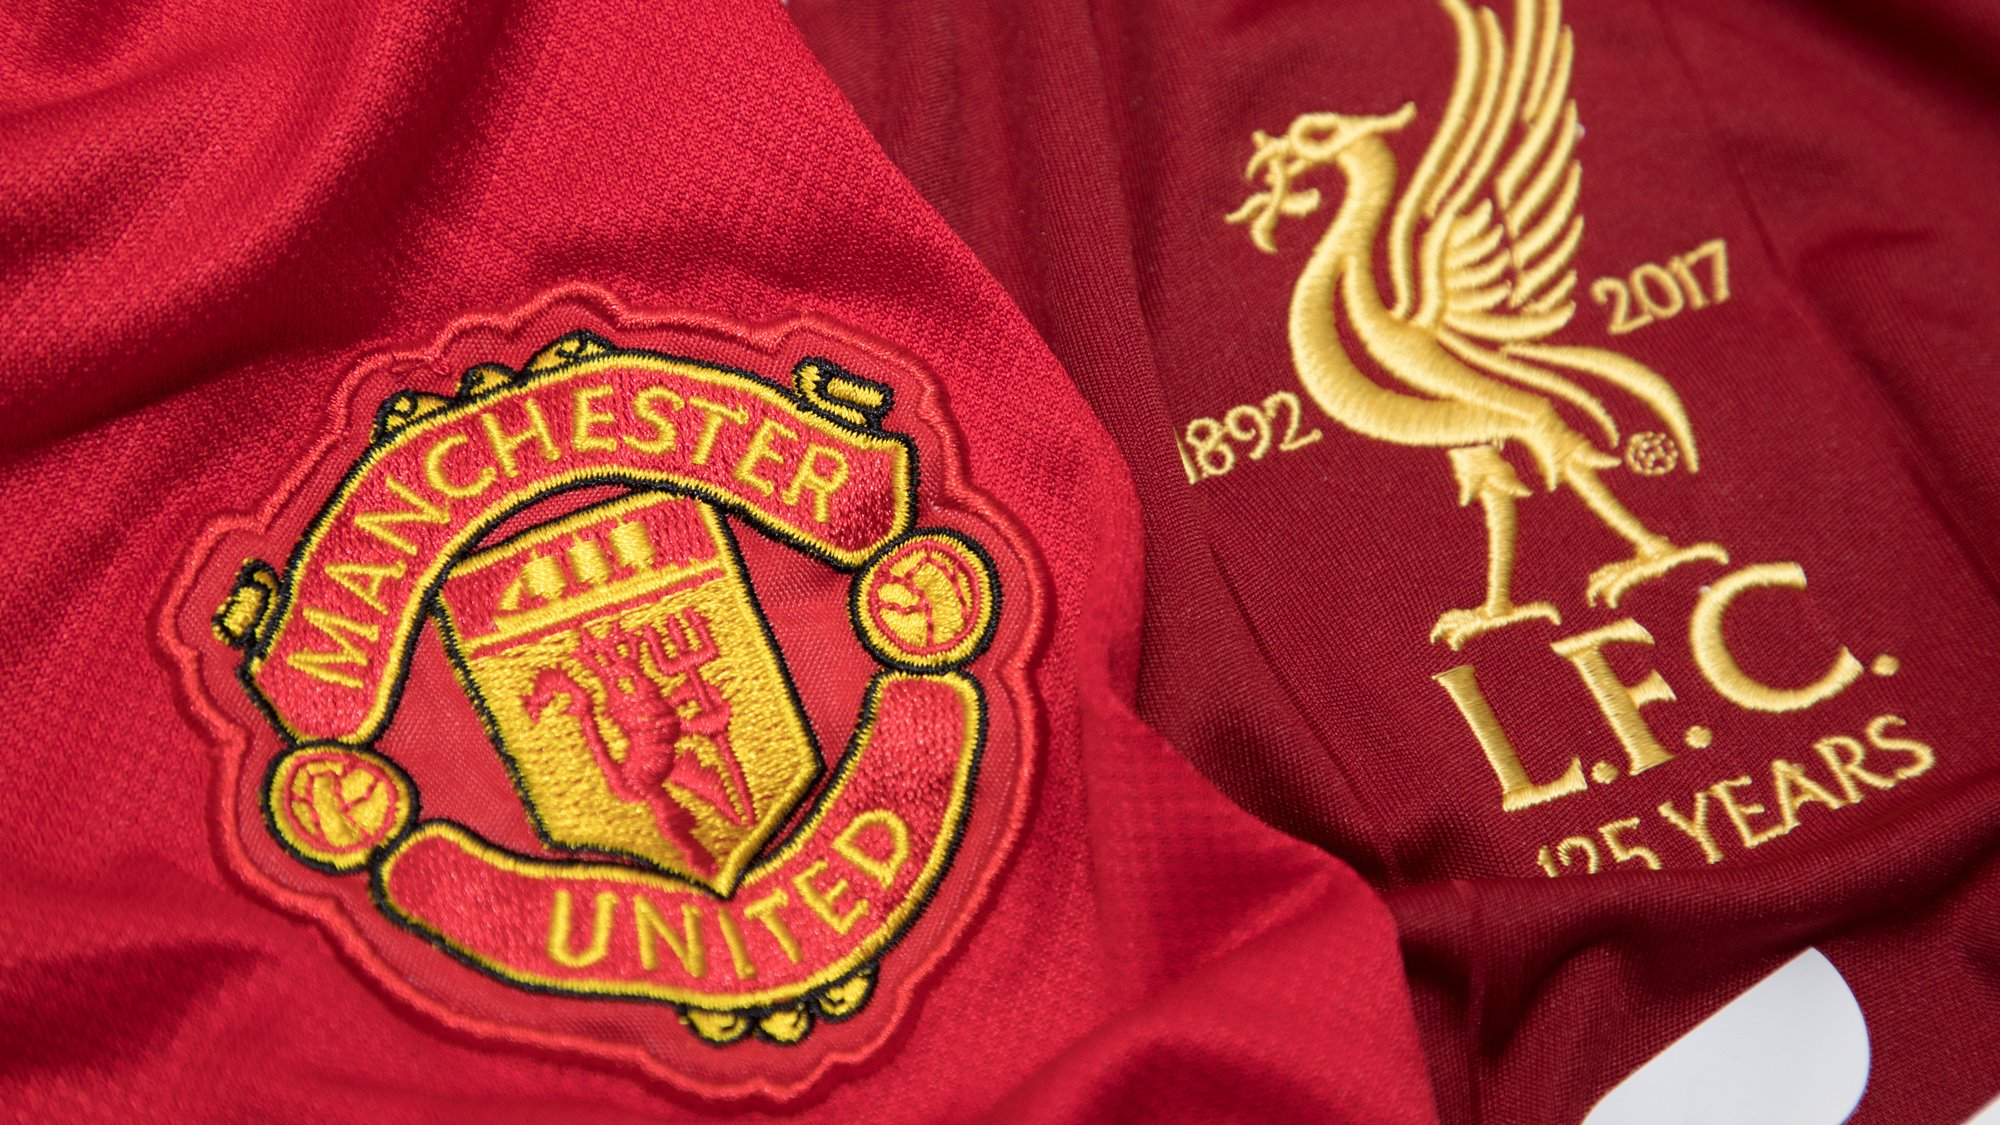 LIVERPOOL MANCHESTER UNITED STREAMING GRATIS